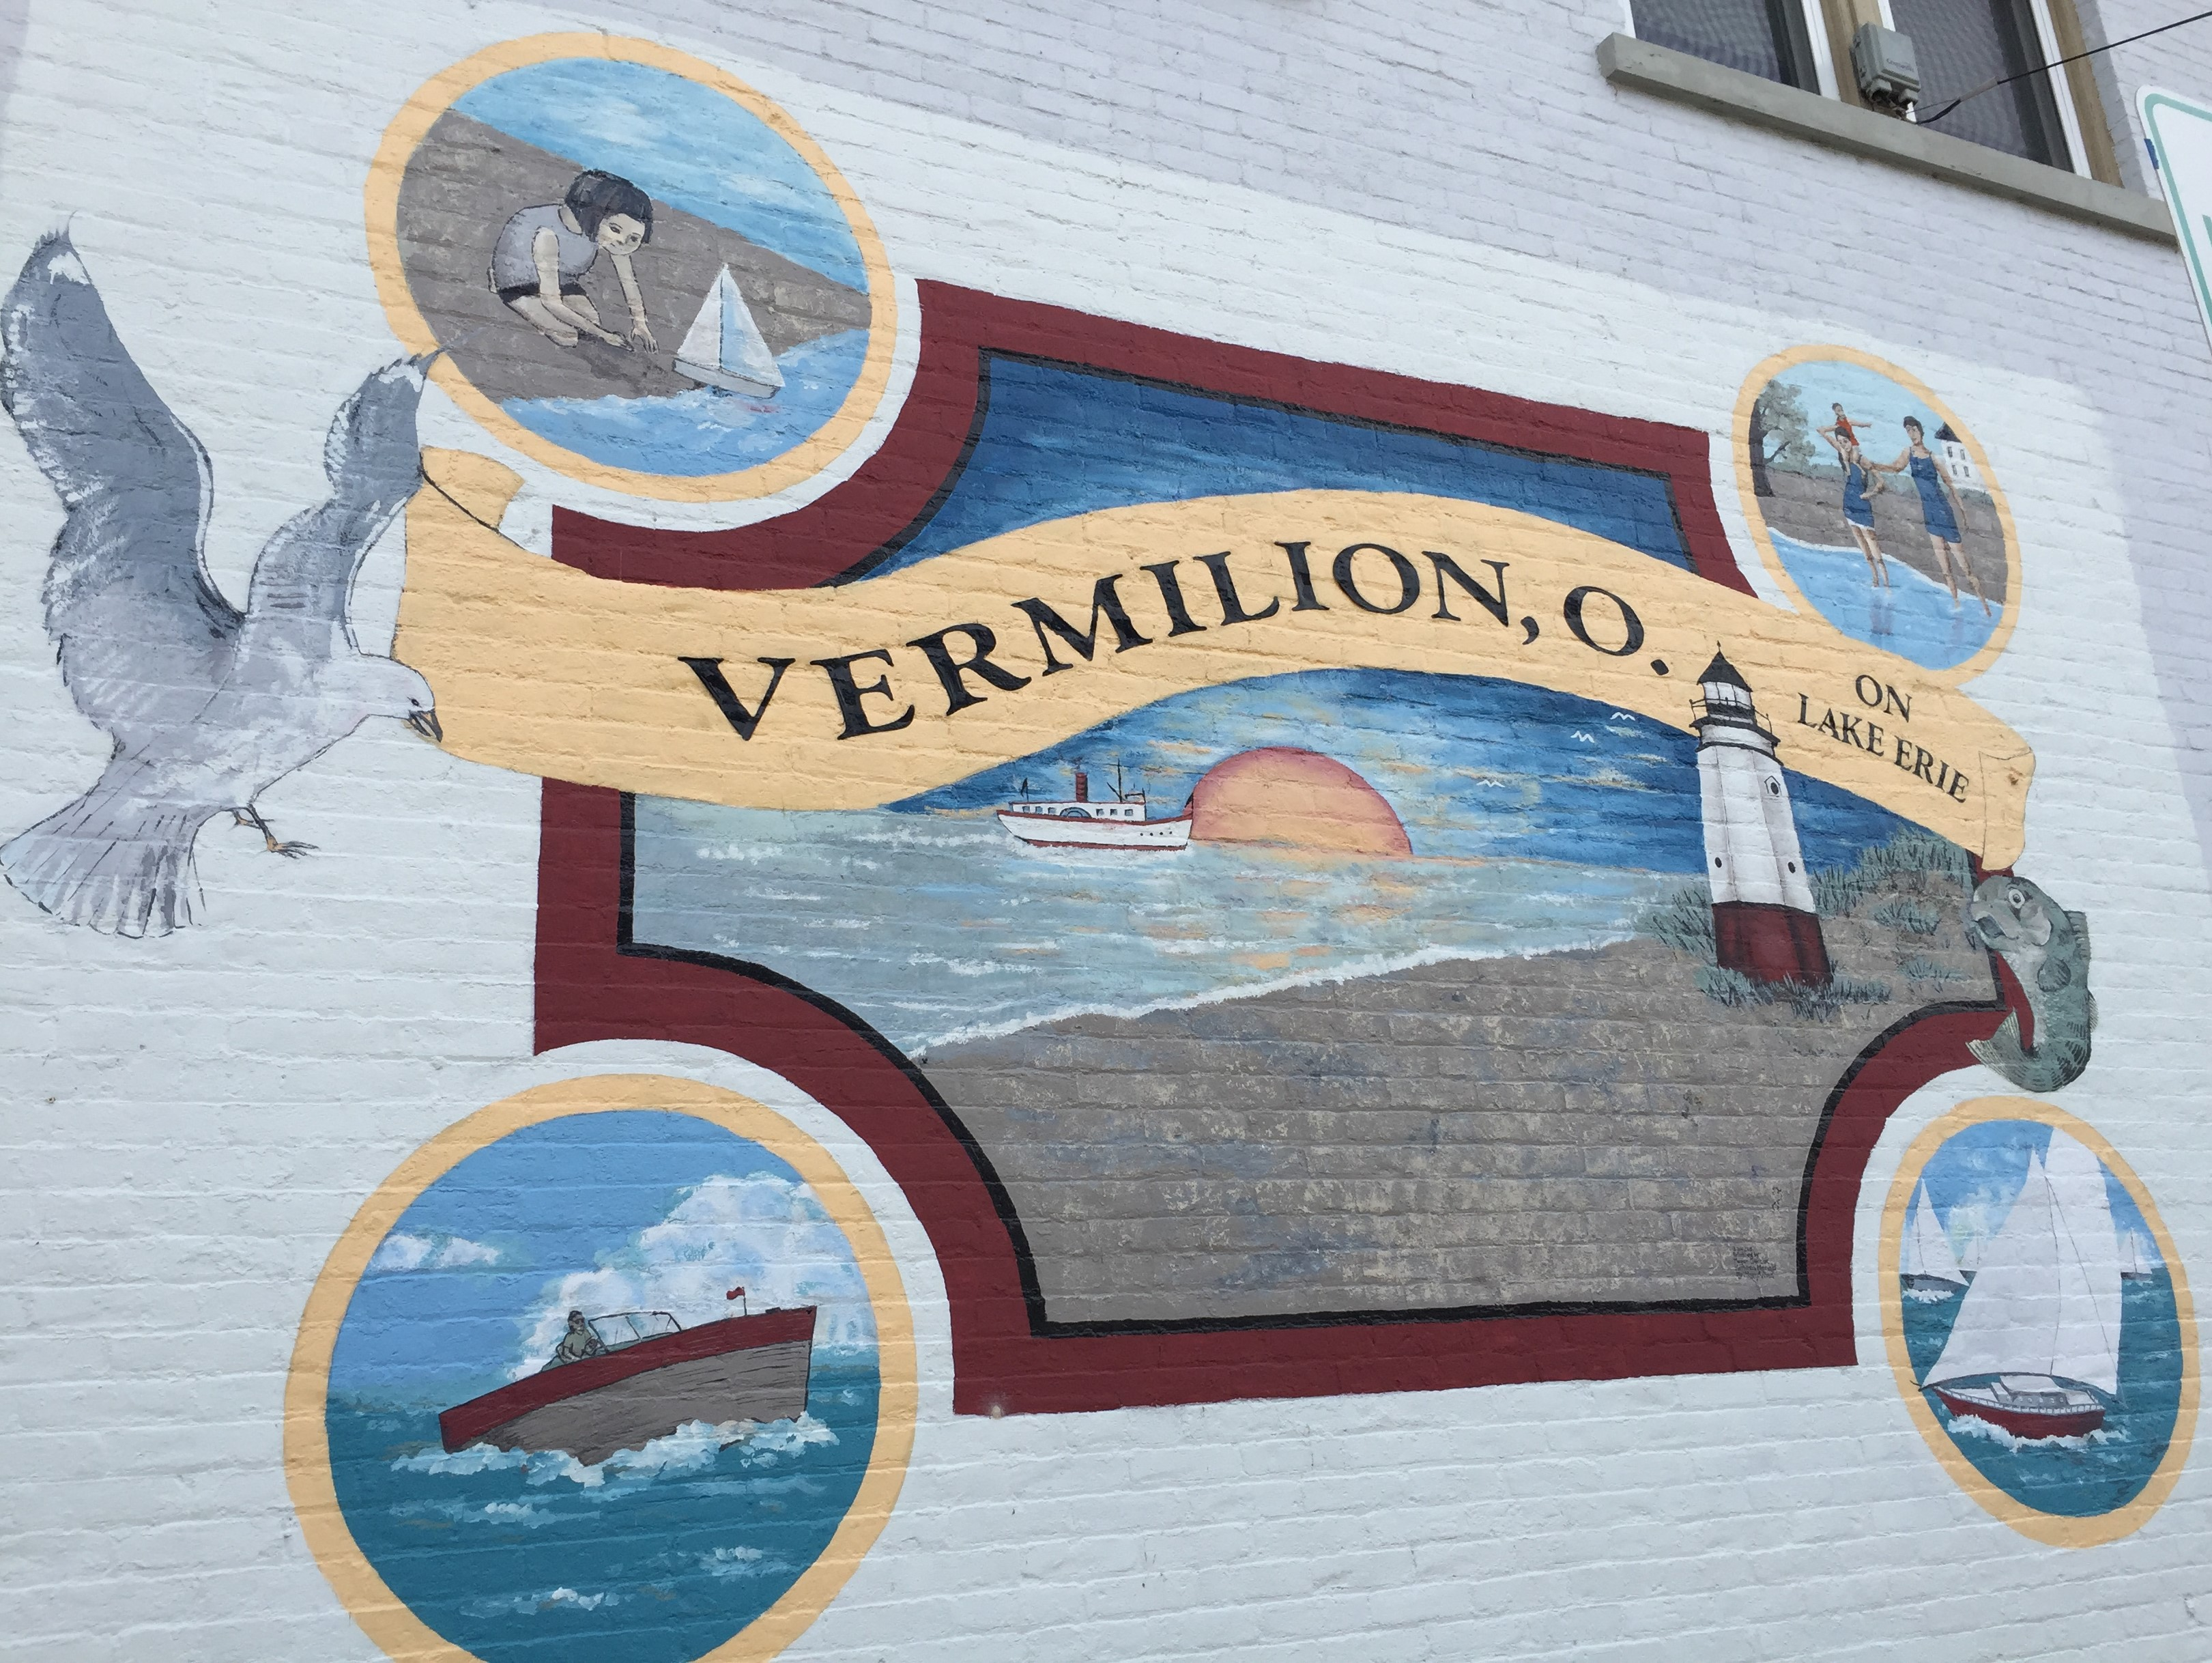 Mural on the wall of the former Hart's Drug Store, Vermilion, Ohio (Photo: Sarah Sundin, August 2016)